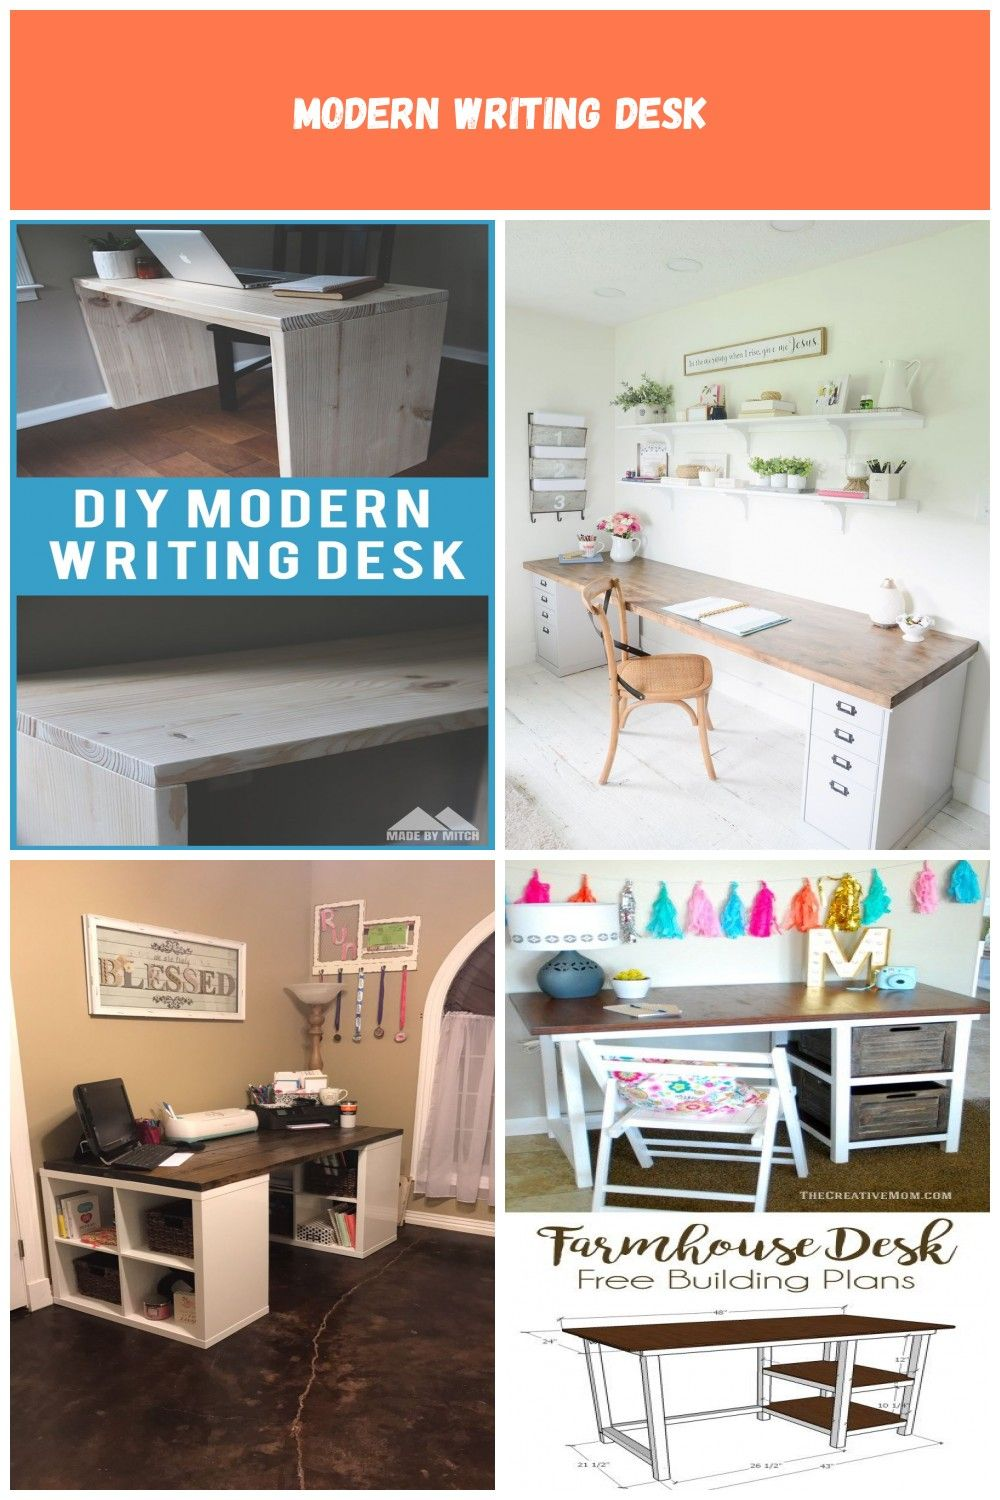 Learn To Make A Modern Looking Writing Desk This Is A Great Looking And Simple Diy Desk That You Can Build This Will Writing Desk Modern Modern Diy Diy Desk